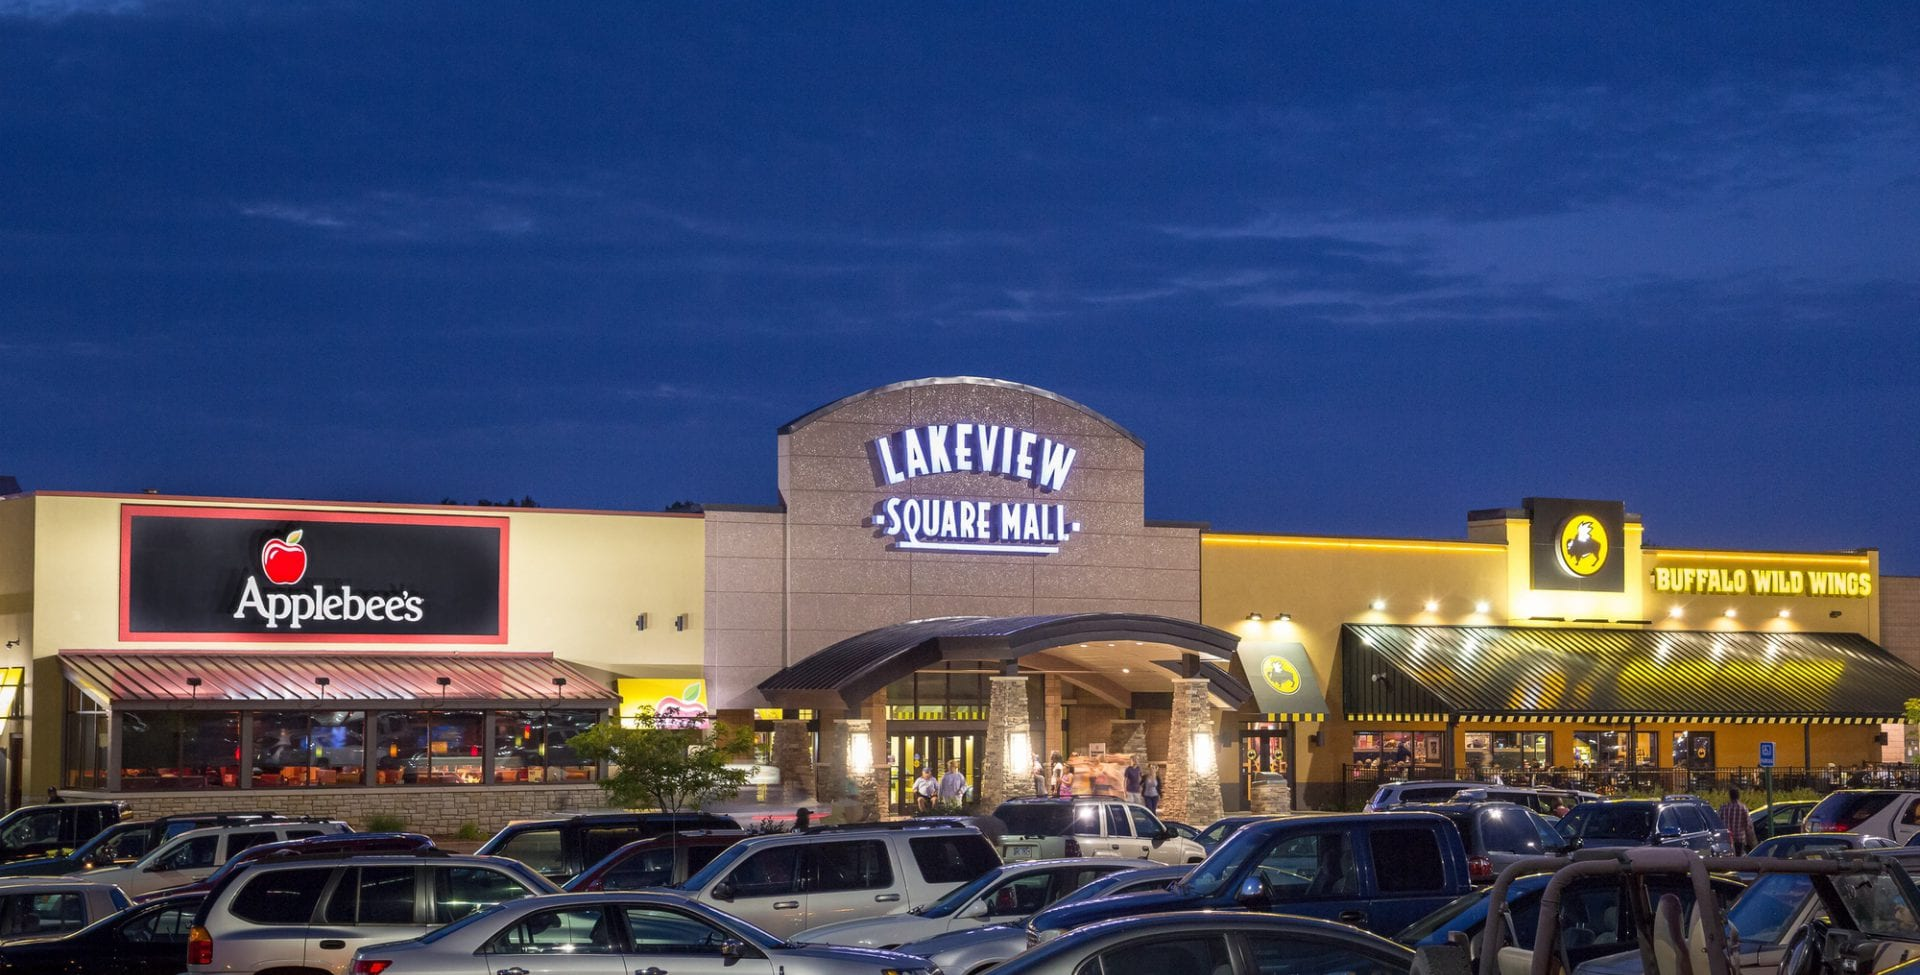 Lakeview Square Mall | GK Real Estate